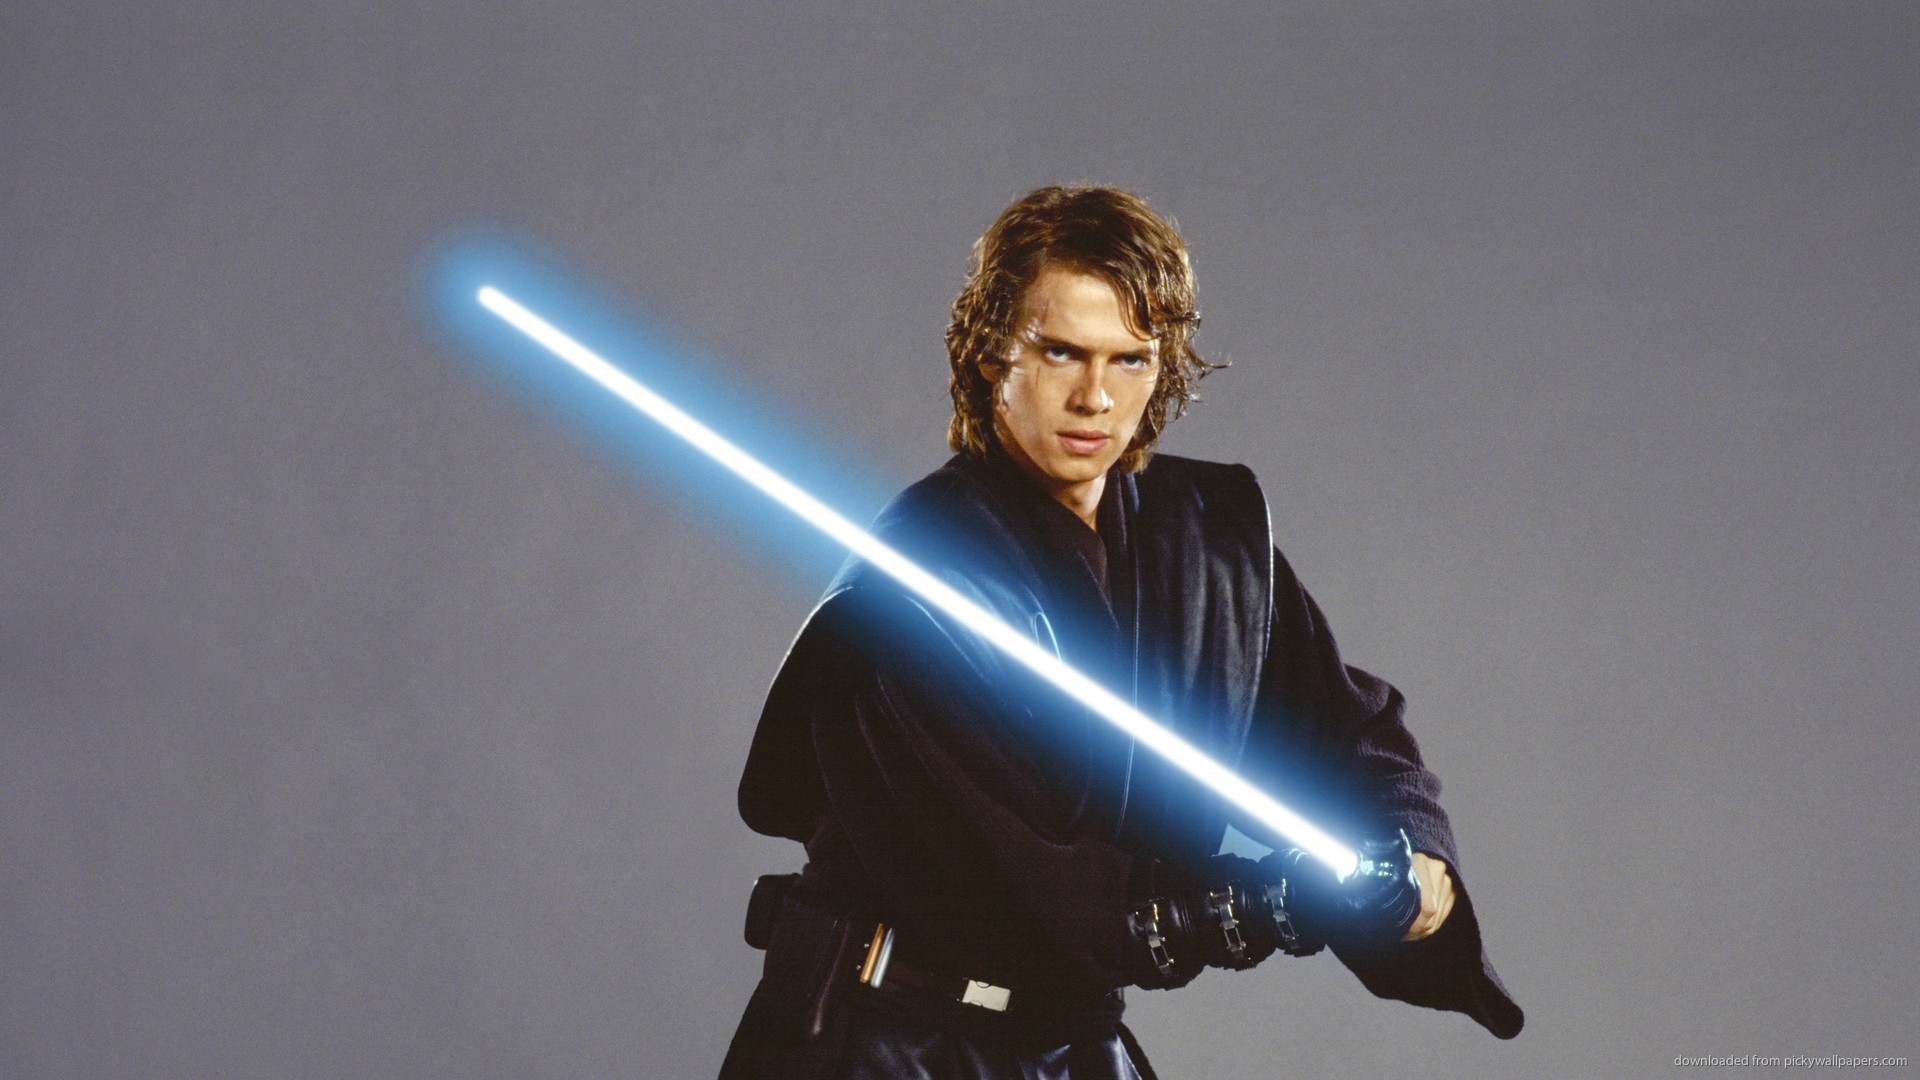 anakin skywalker with jedi lightsaberjpg 1920x1080